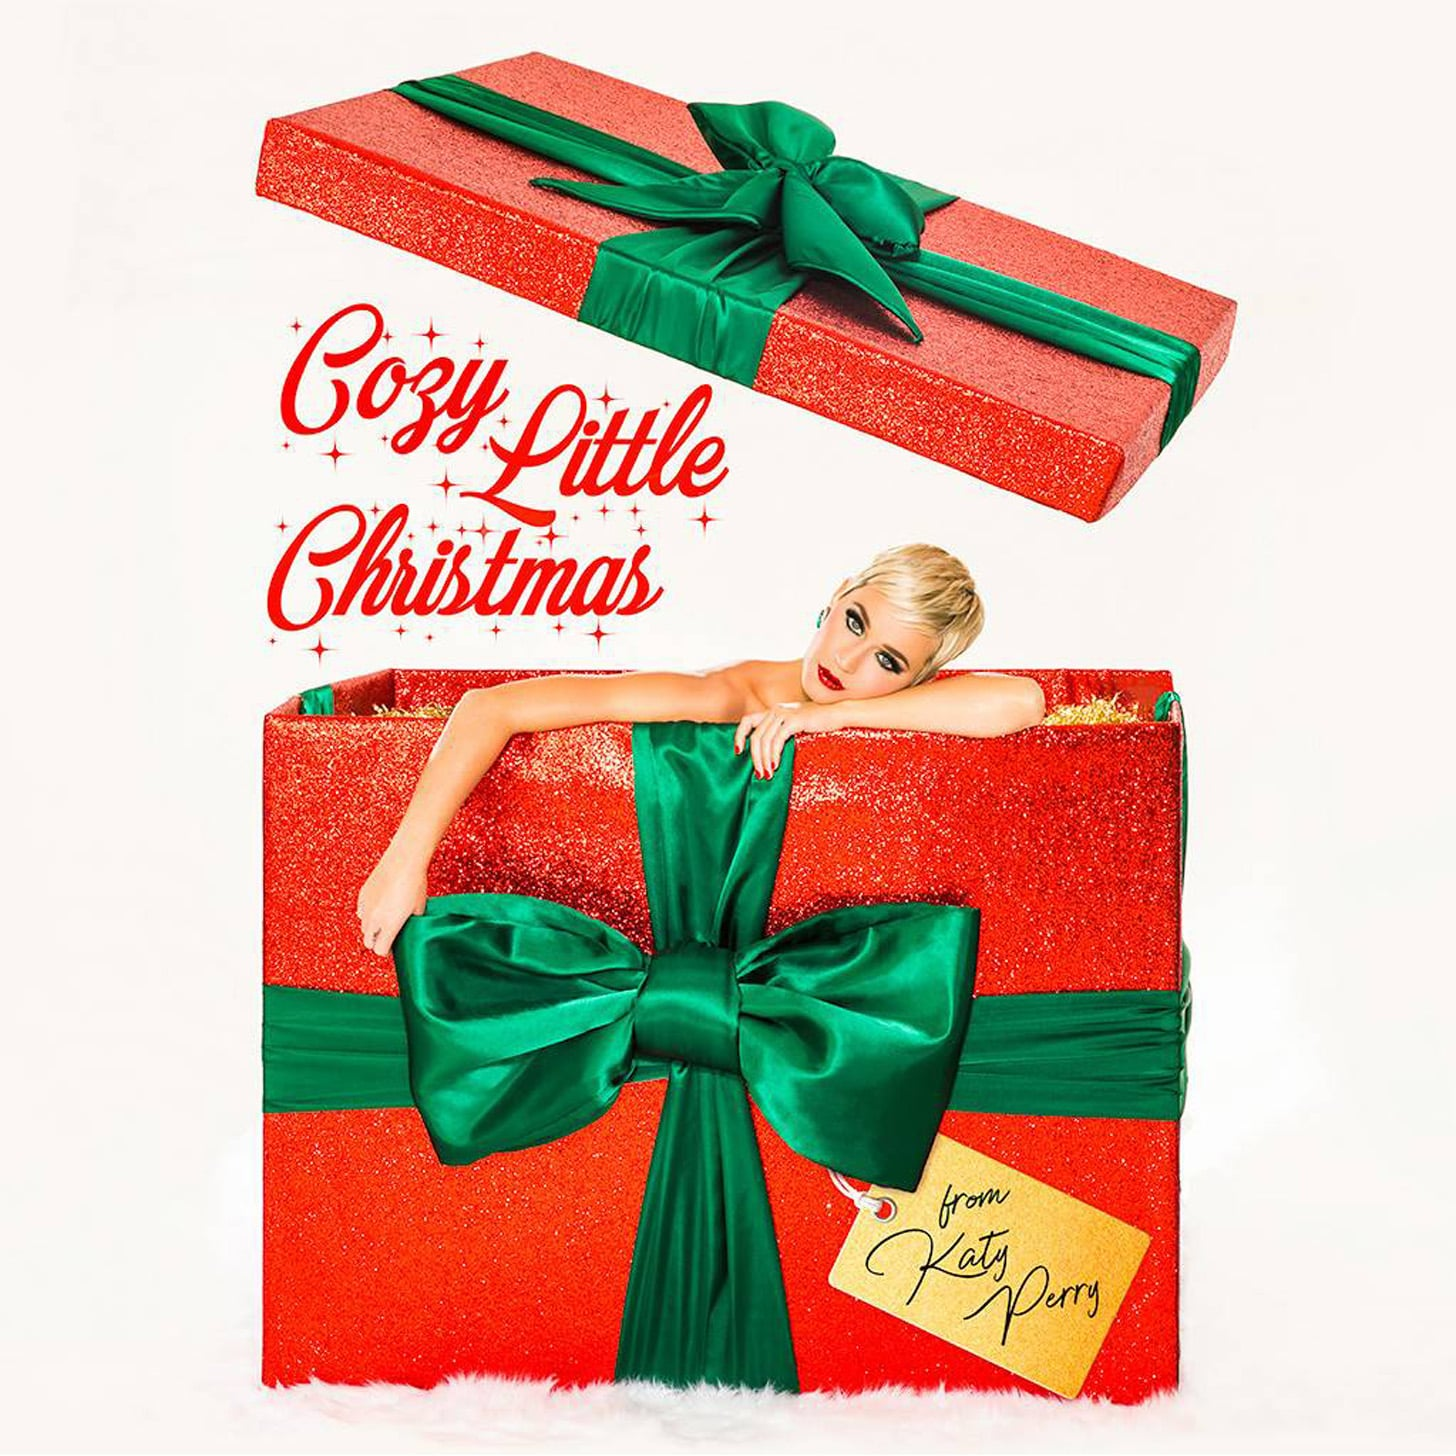 Katy Perry's New Song Cozy Little Christmas